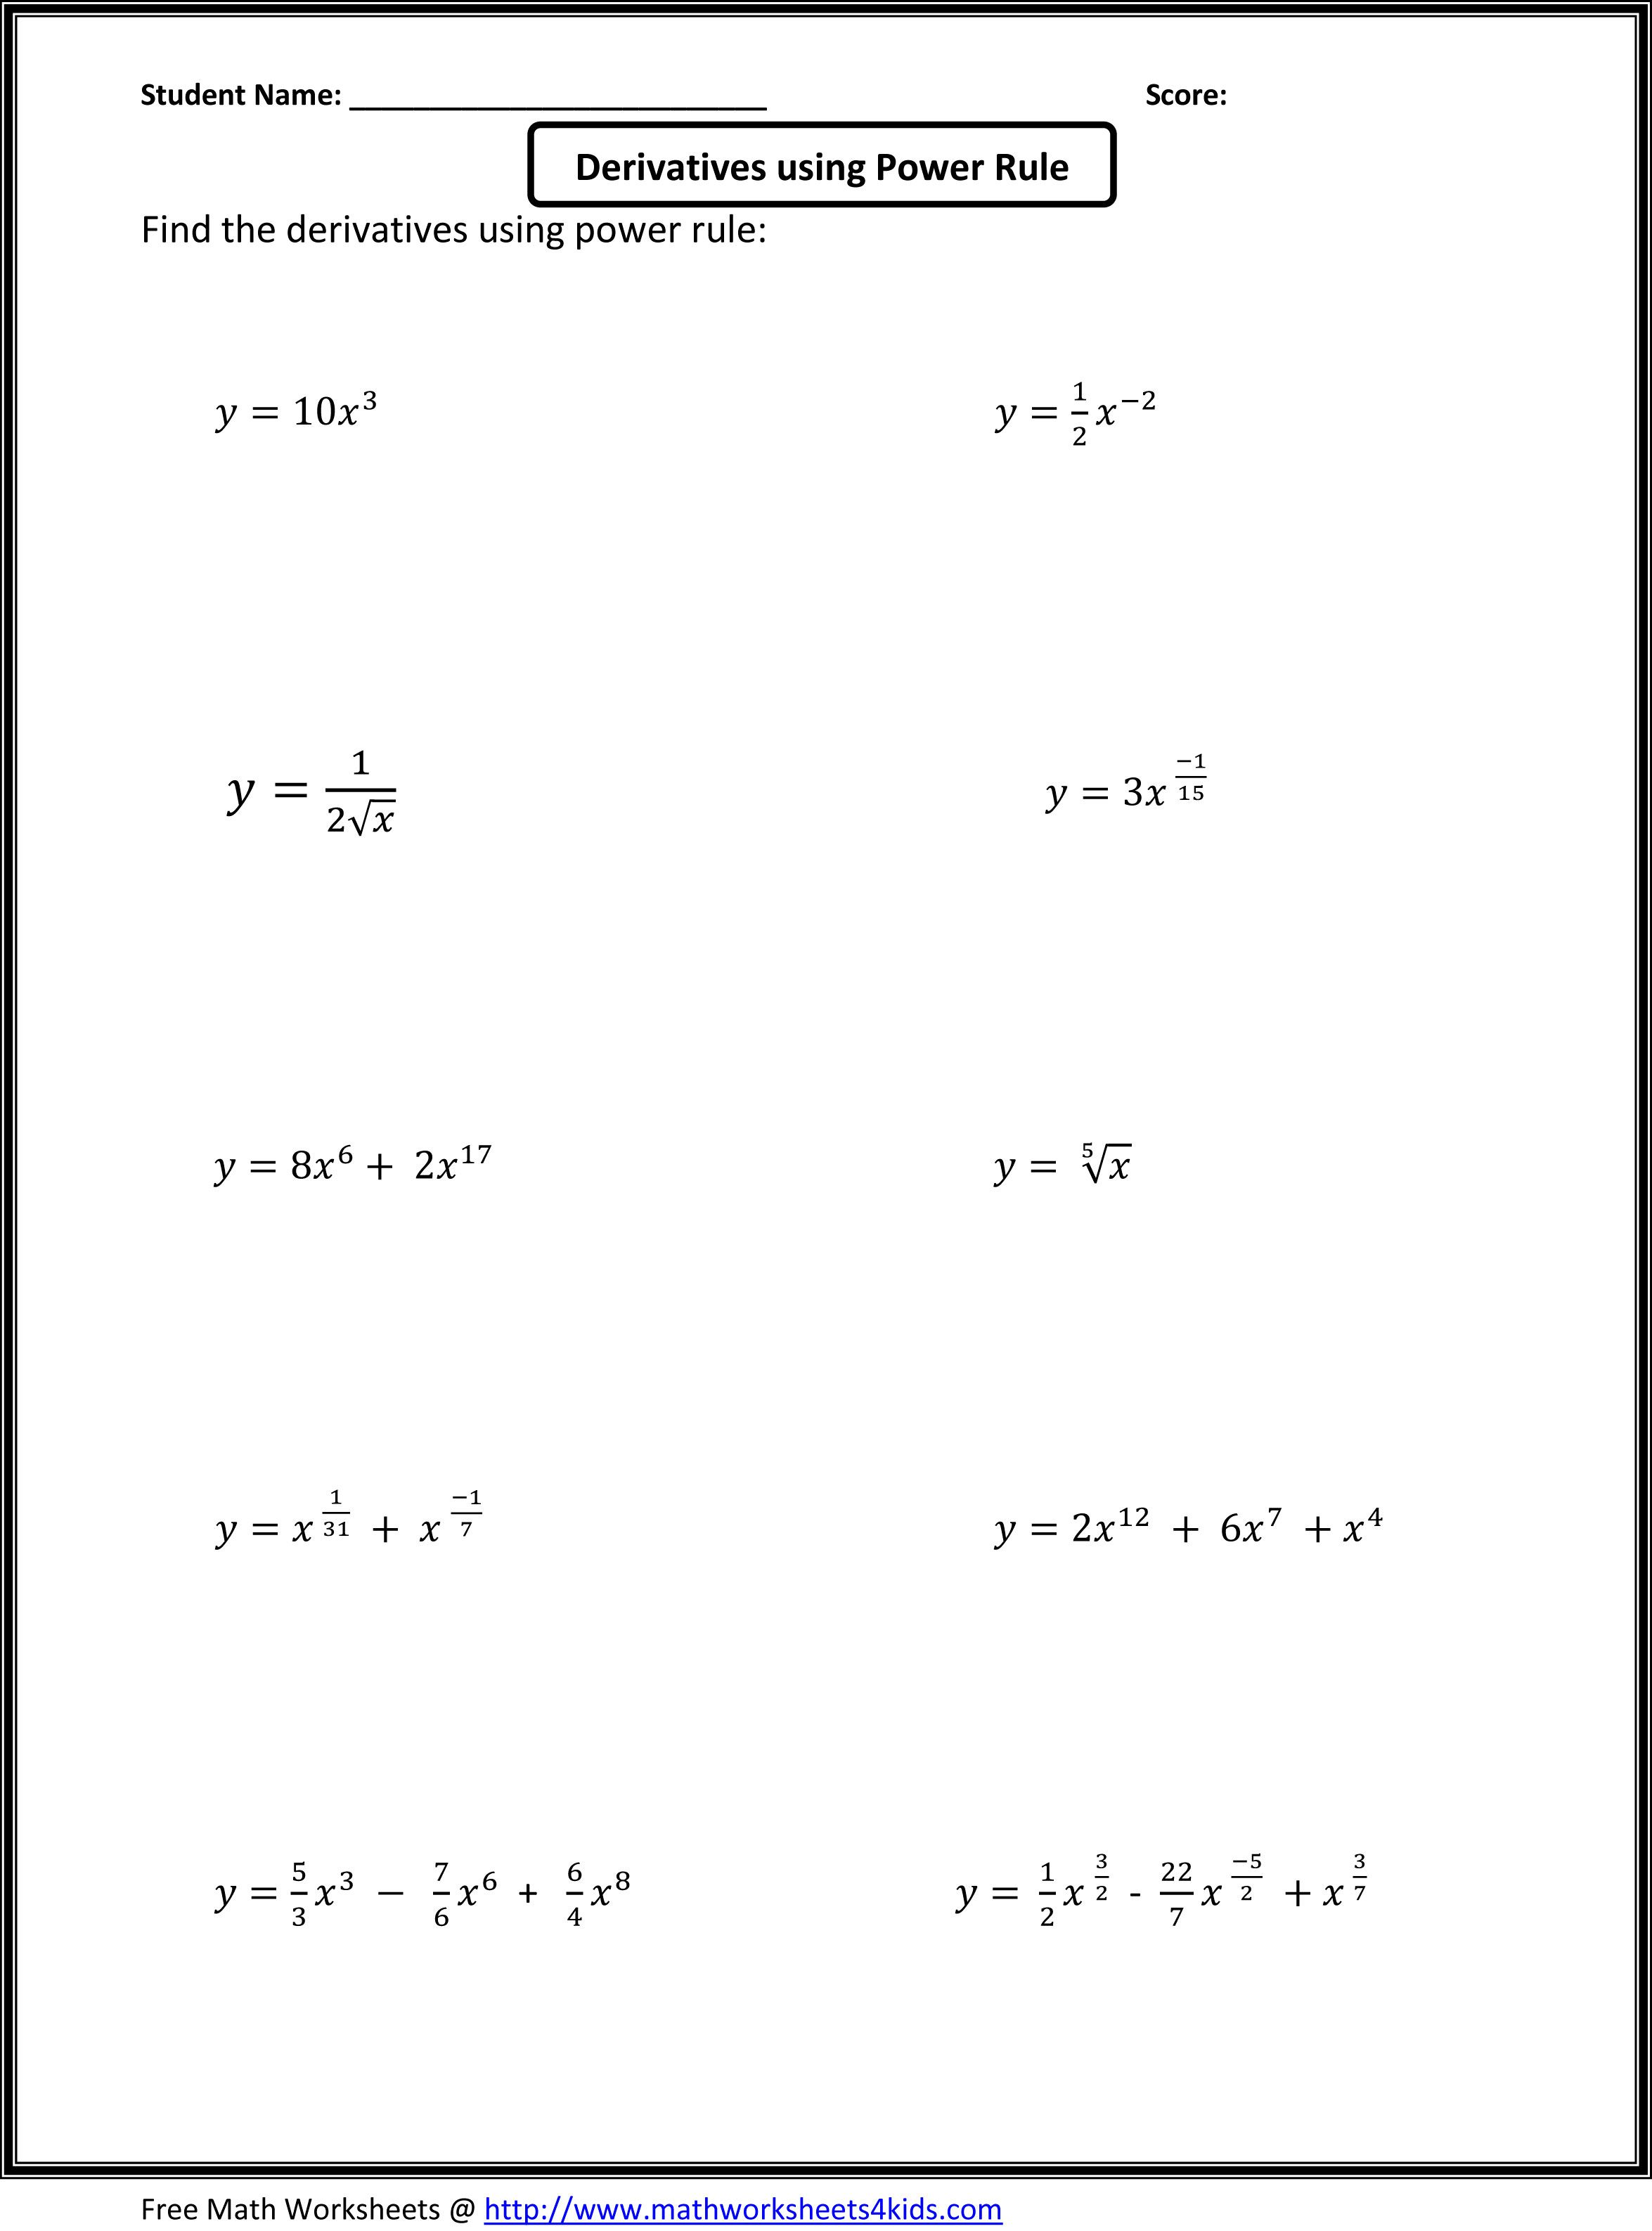 Basic calculus worksheets for higher grade students. | Teaching ...